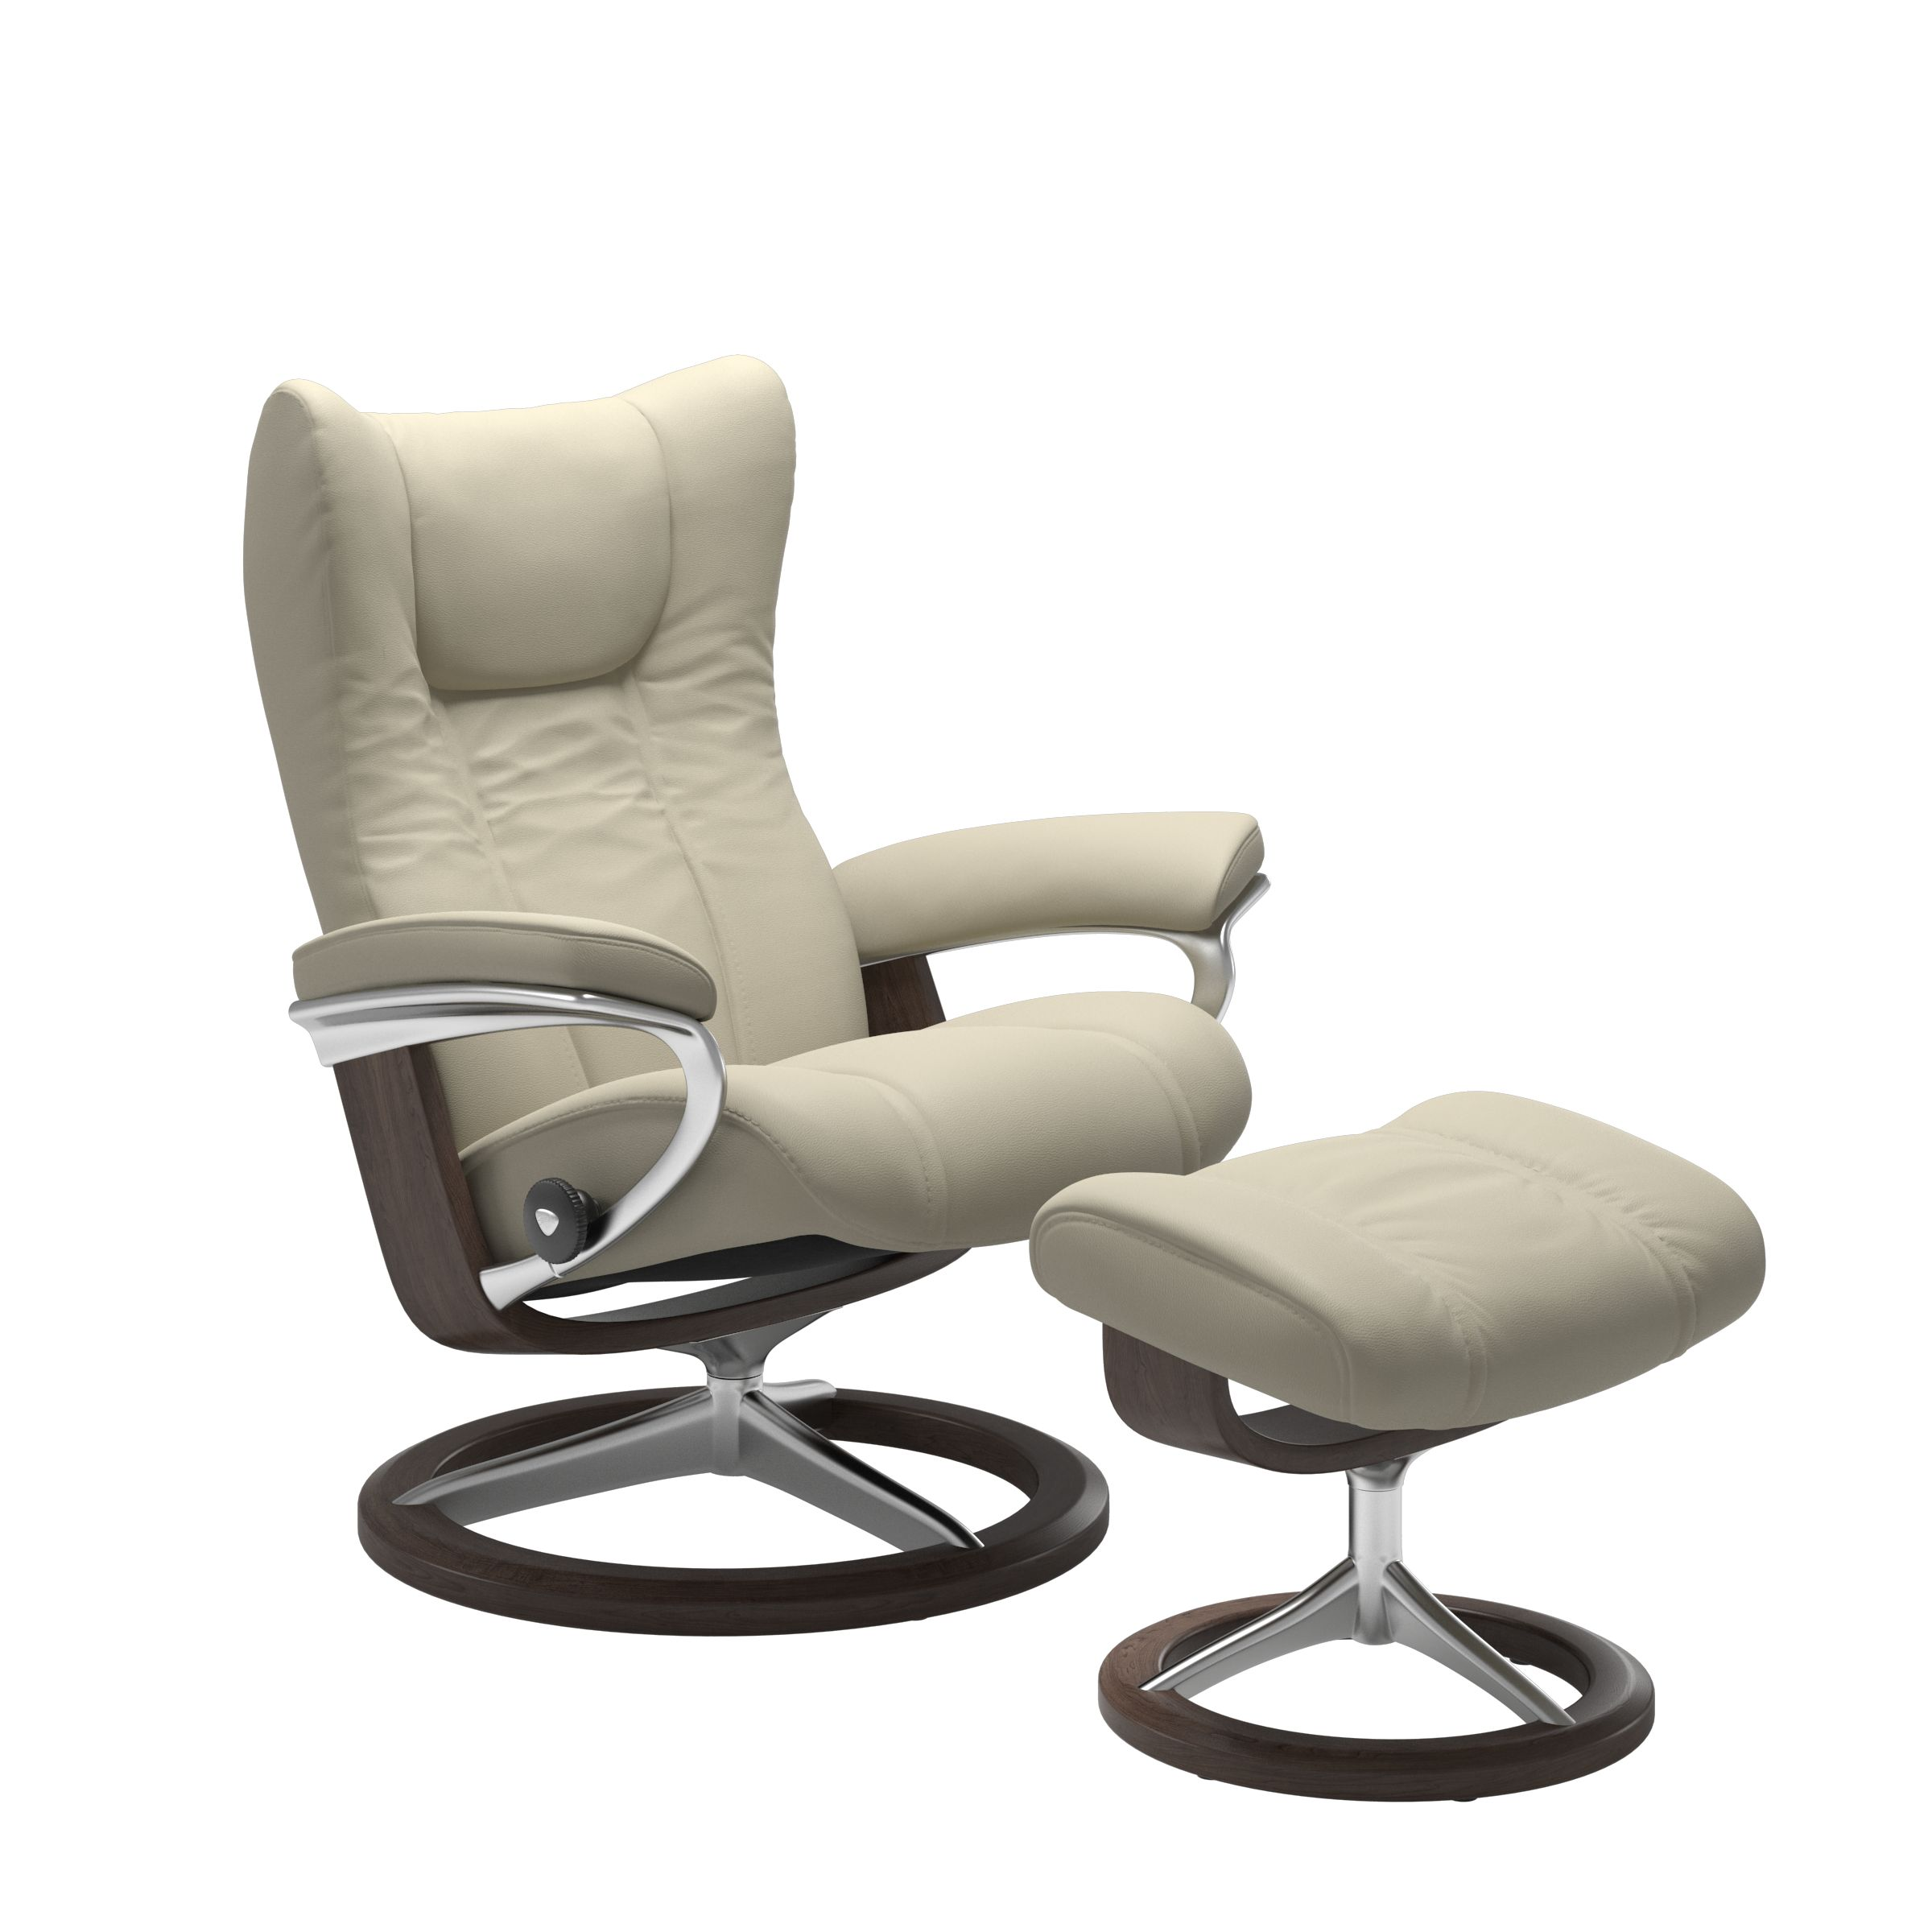 Stressless Ekornes Sessel Stressless Wing Recliners